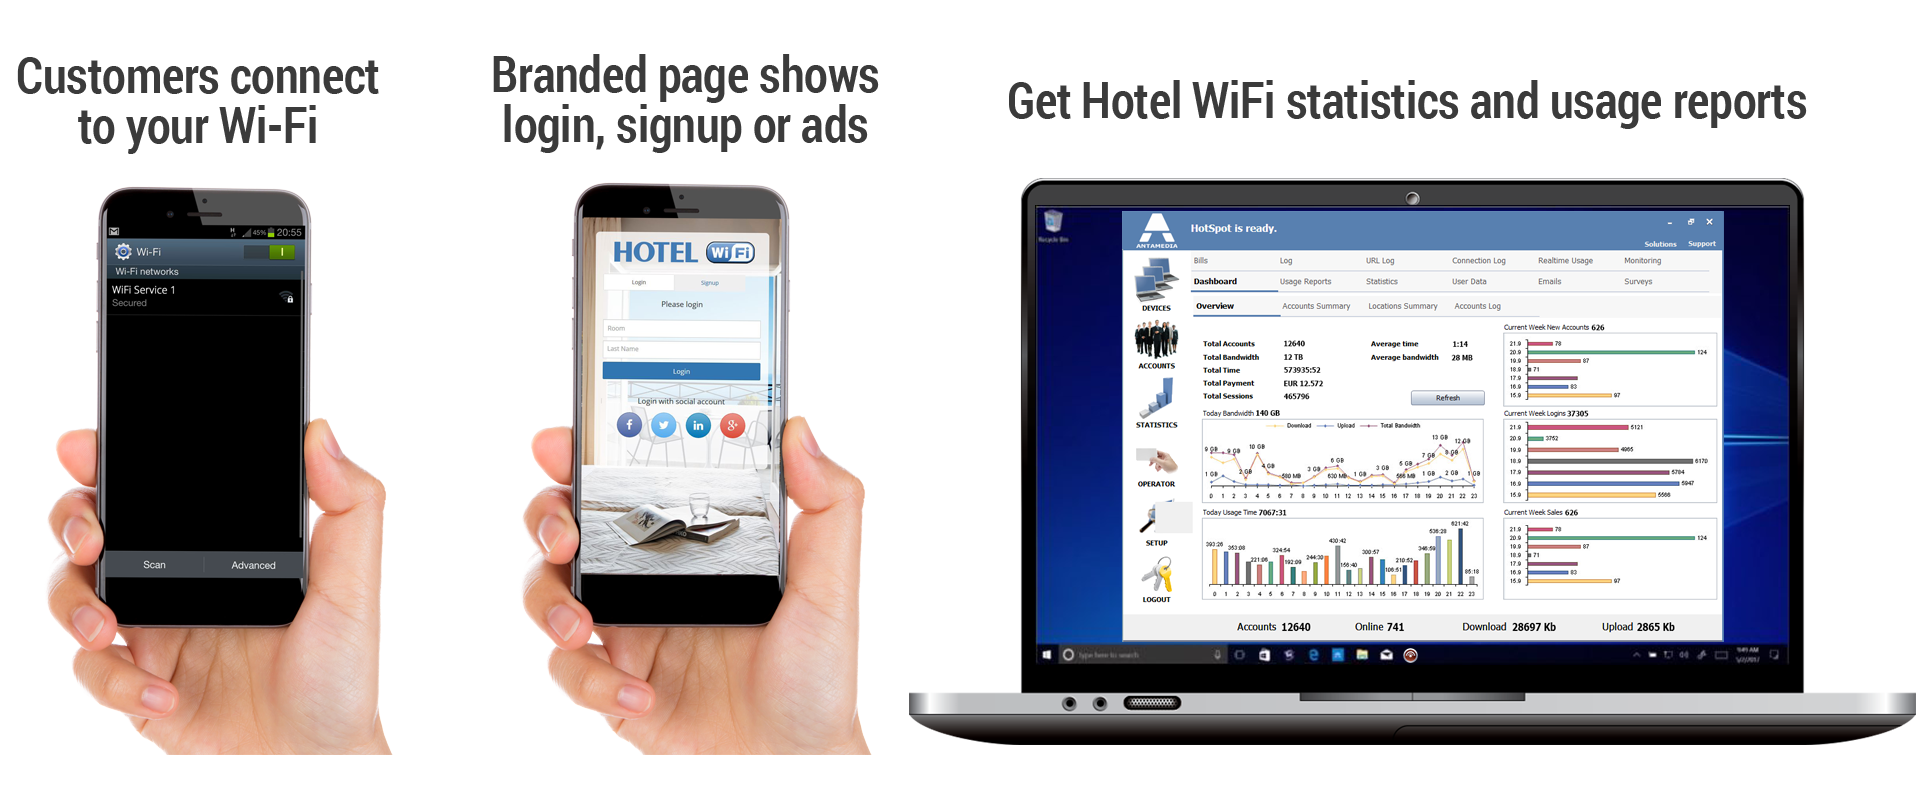 Hotel WiFi software - Industry Leading Hotel Internet Software